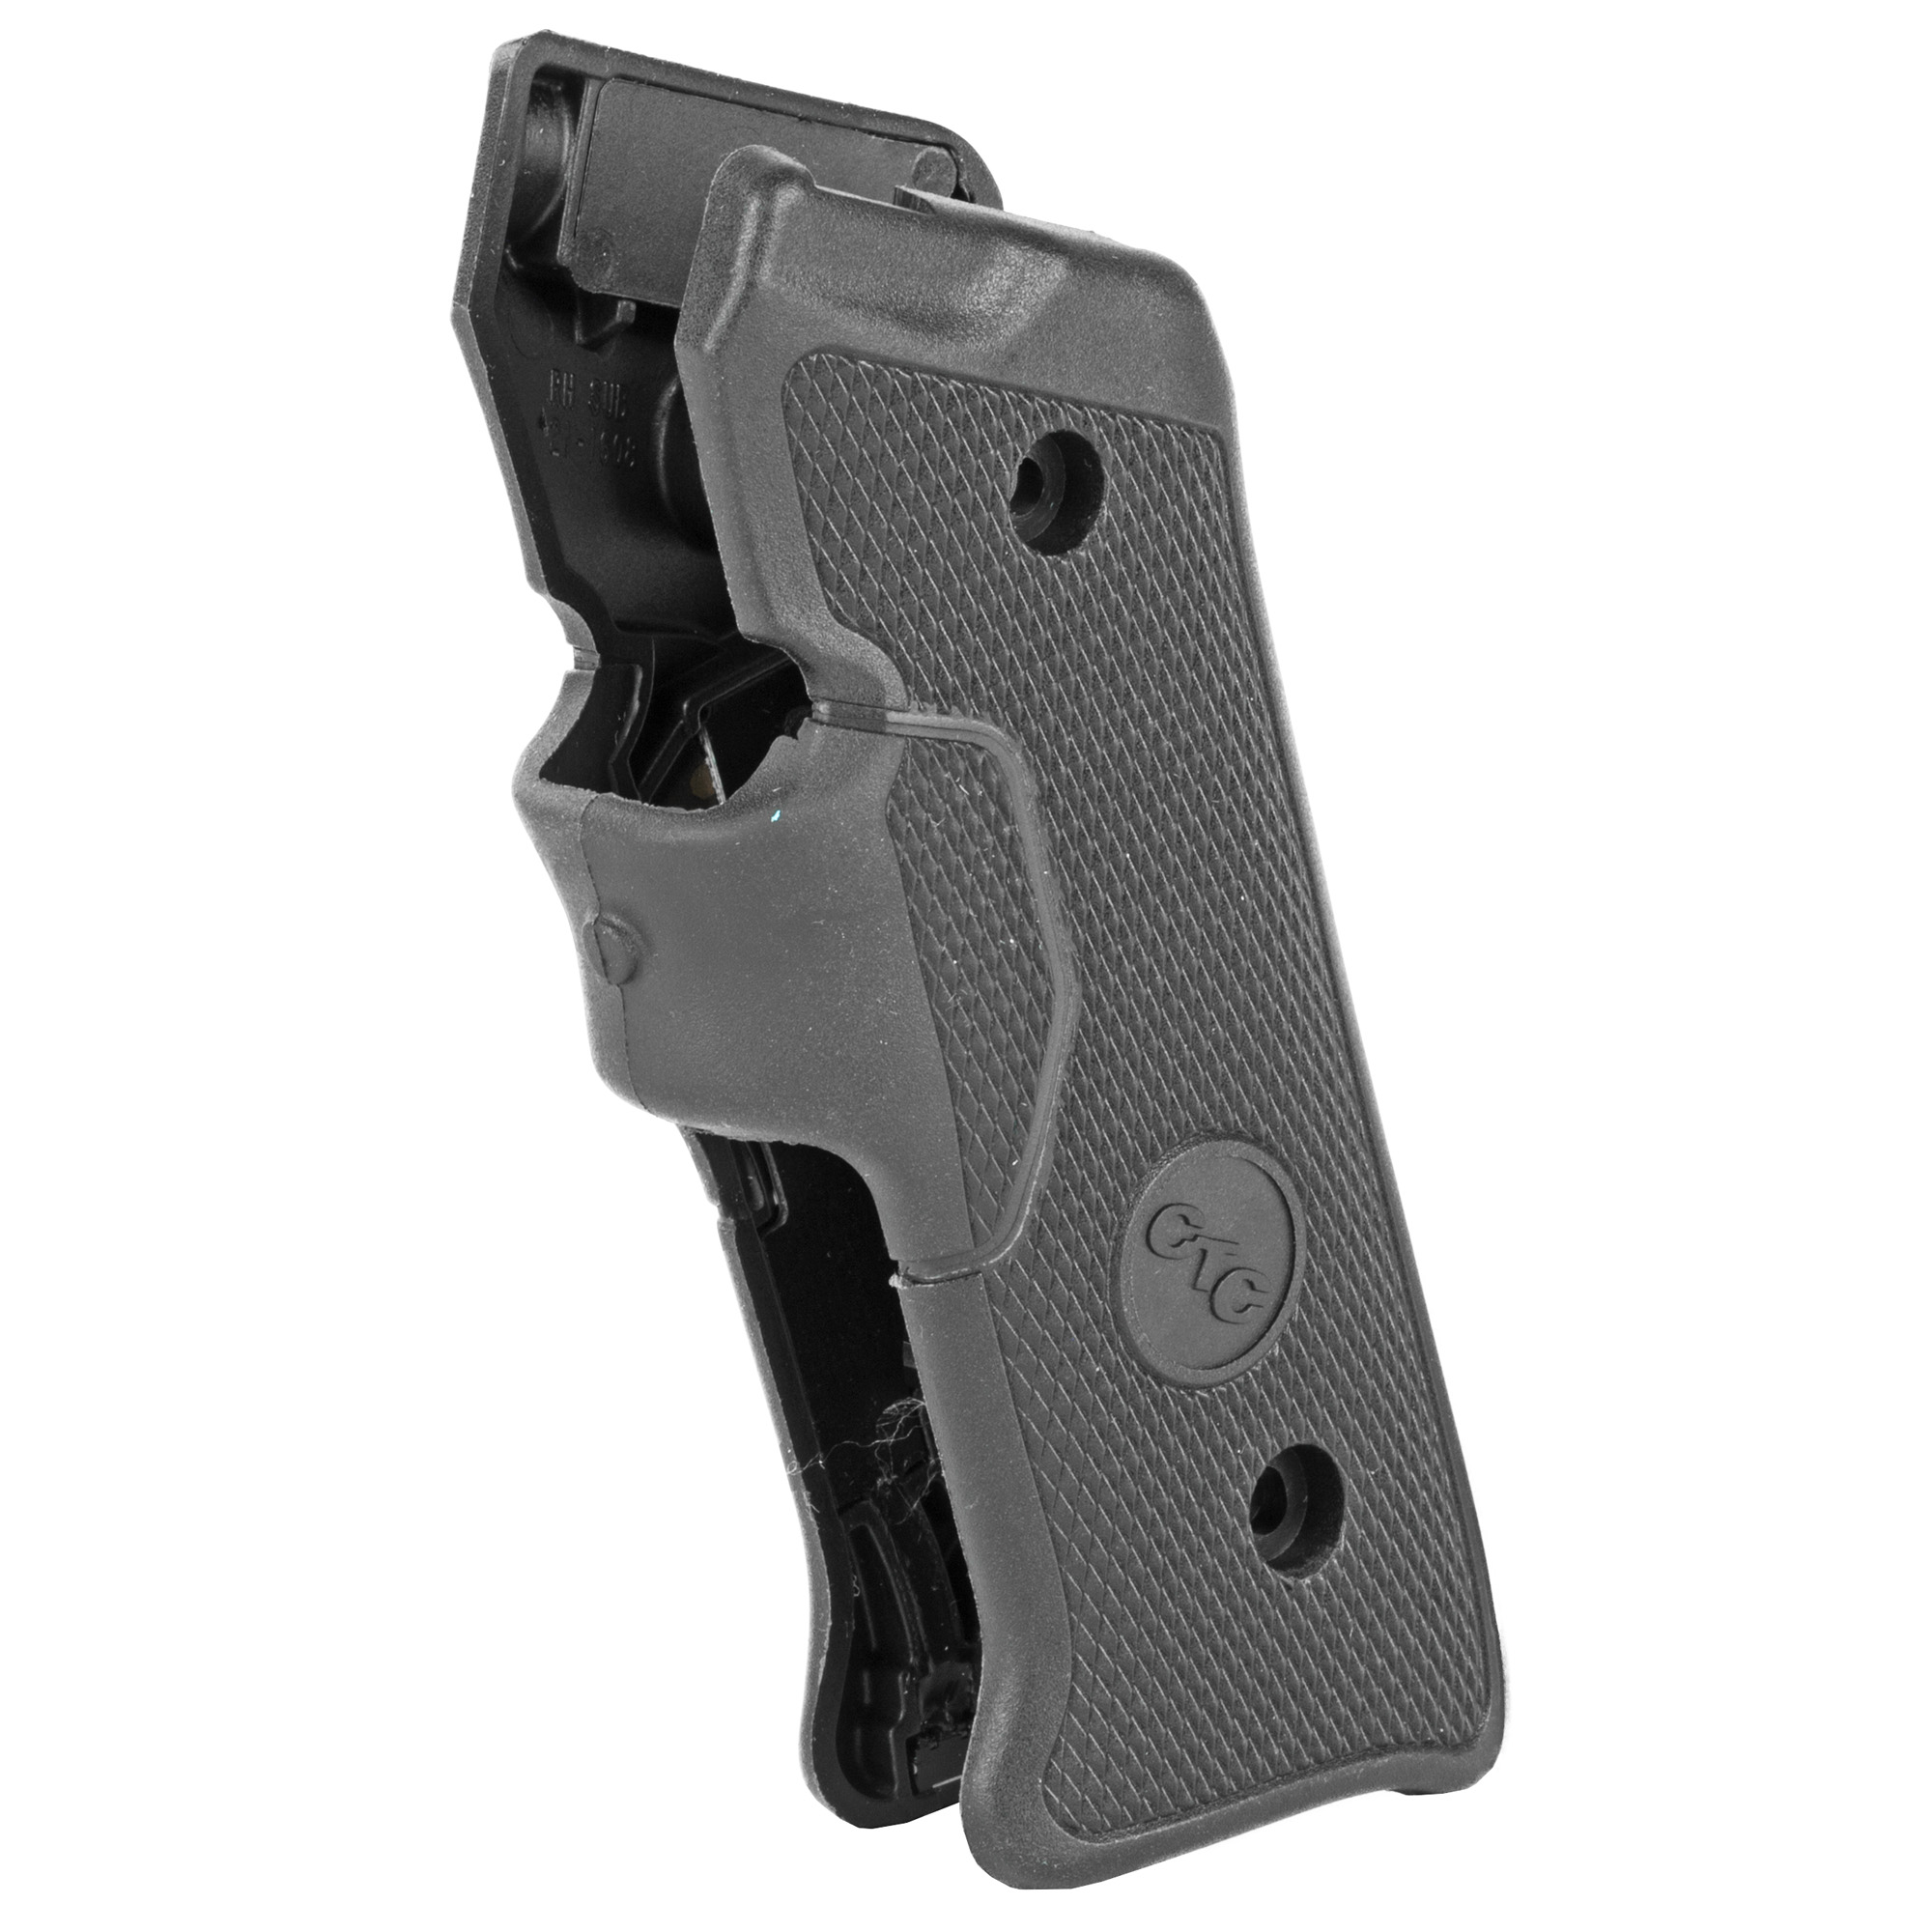 """LG-403 laser sights feature an instinctive front activation front strap switch for the Ruger Mark II and Mark III pistols. Rugged hard polymer side panels are fused with a durable rubber activation strap for excellent ergonomics with supreme durability. Whether you use your Ruger for plinking"""" hunting or professional purposes"""" LG-403 Lasergrips(R) provides a higher level of accuracy and faster target acquisition. Will not hinder fit on most holsters."""